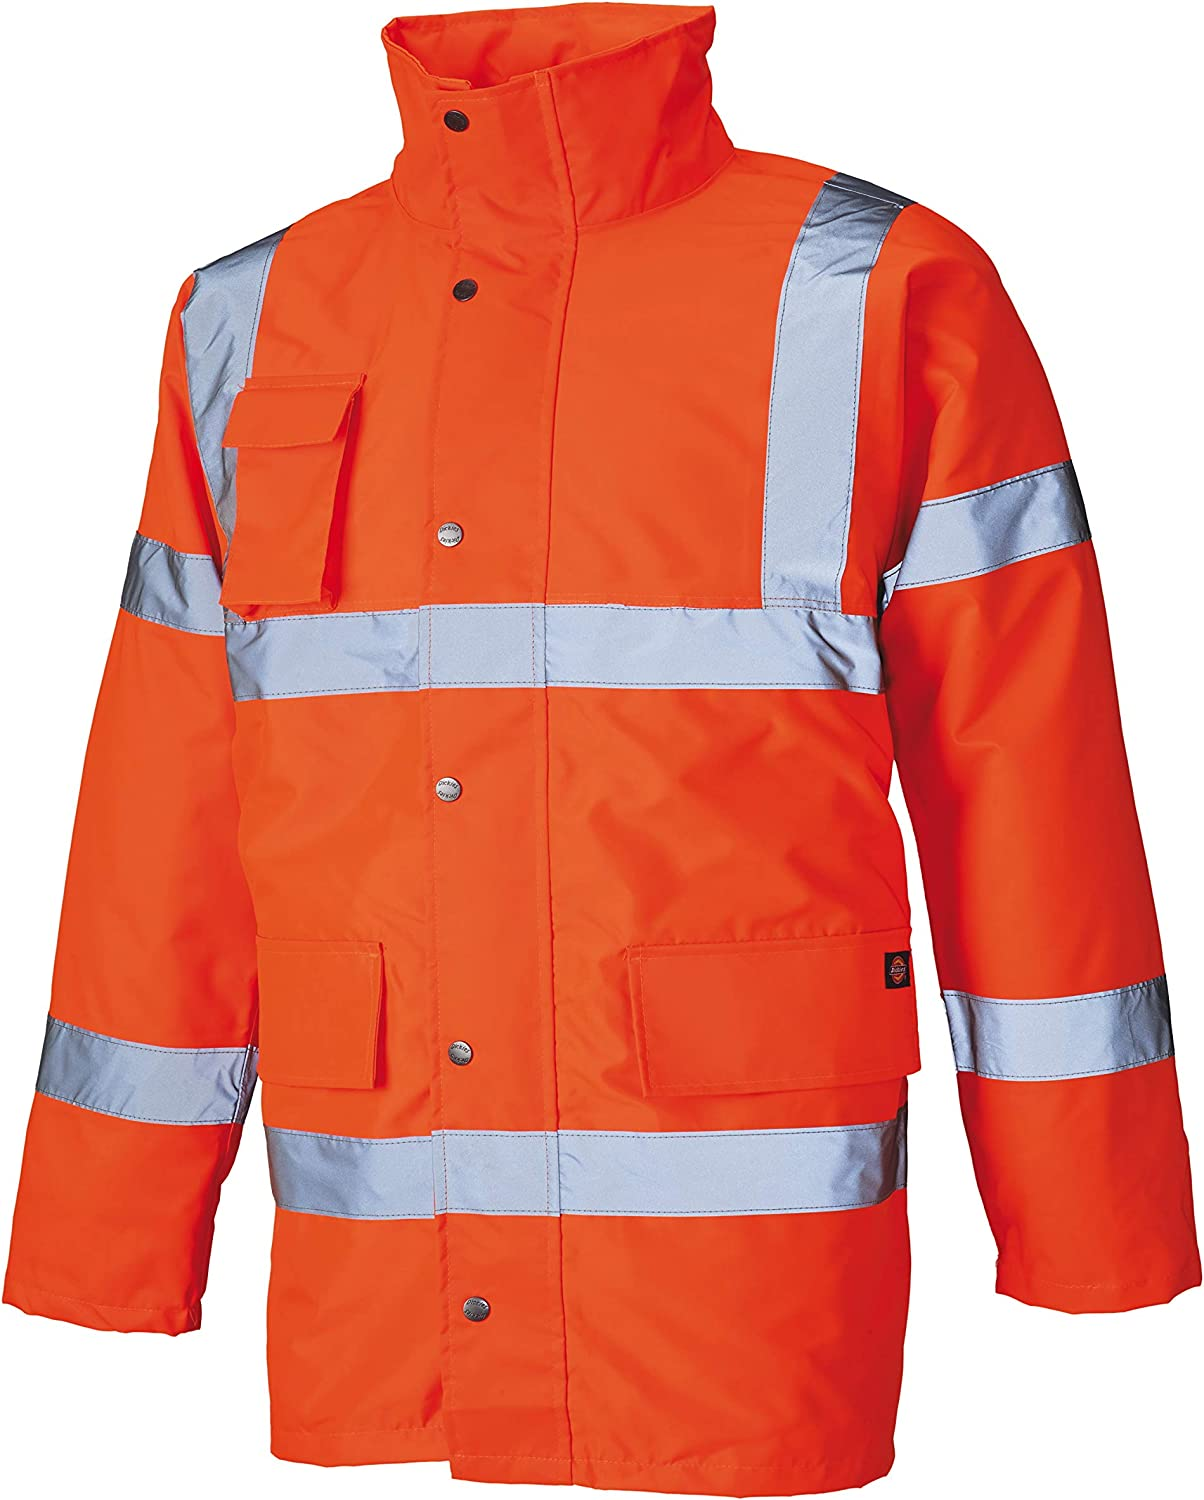 Dickies High Visibilty Hi-Vis Yellow Safety Motorway Jacket Medium Chest 40-42